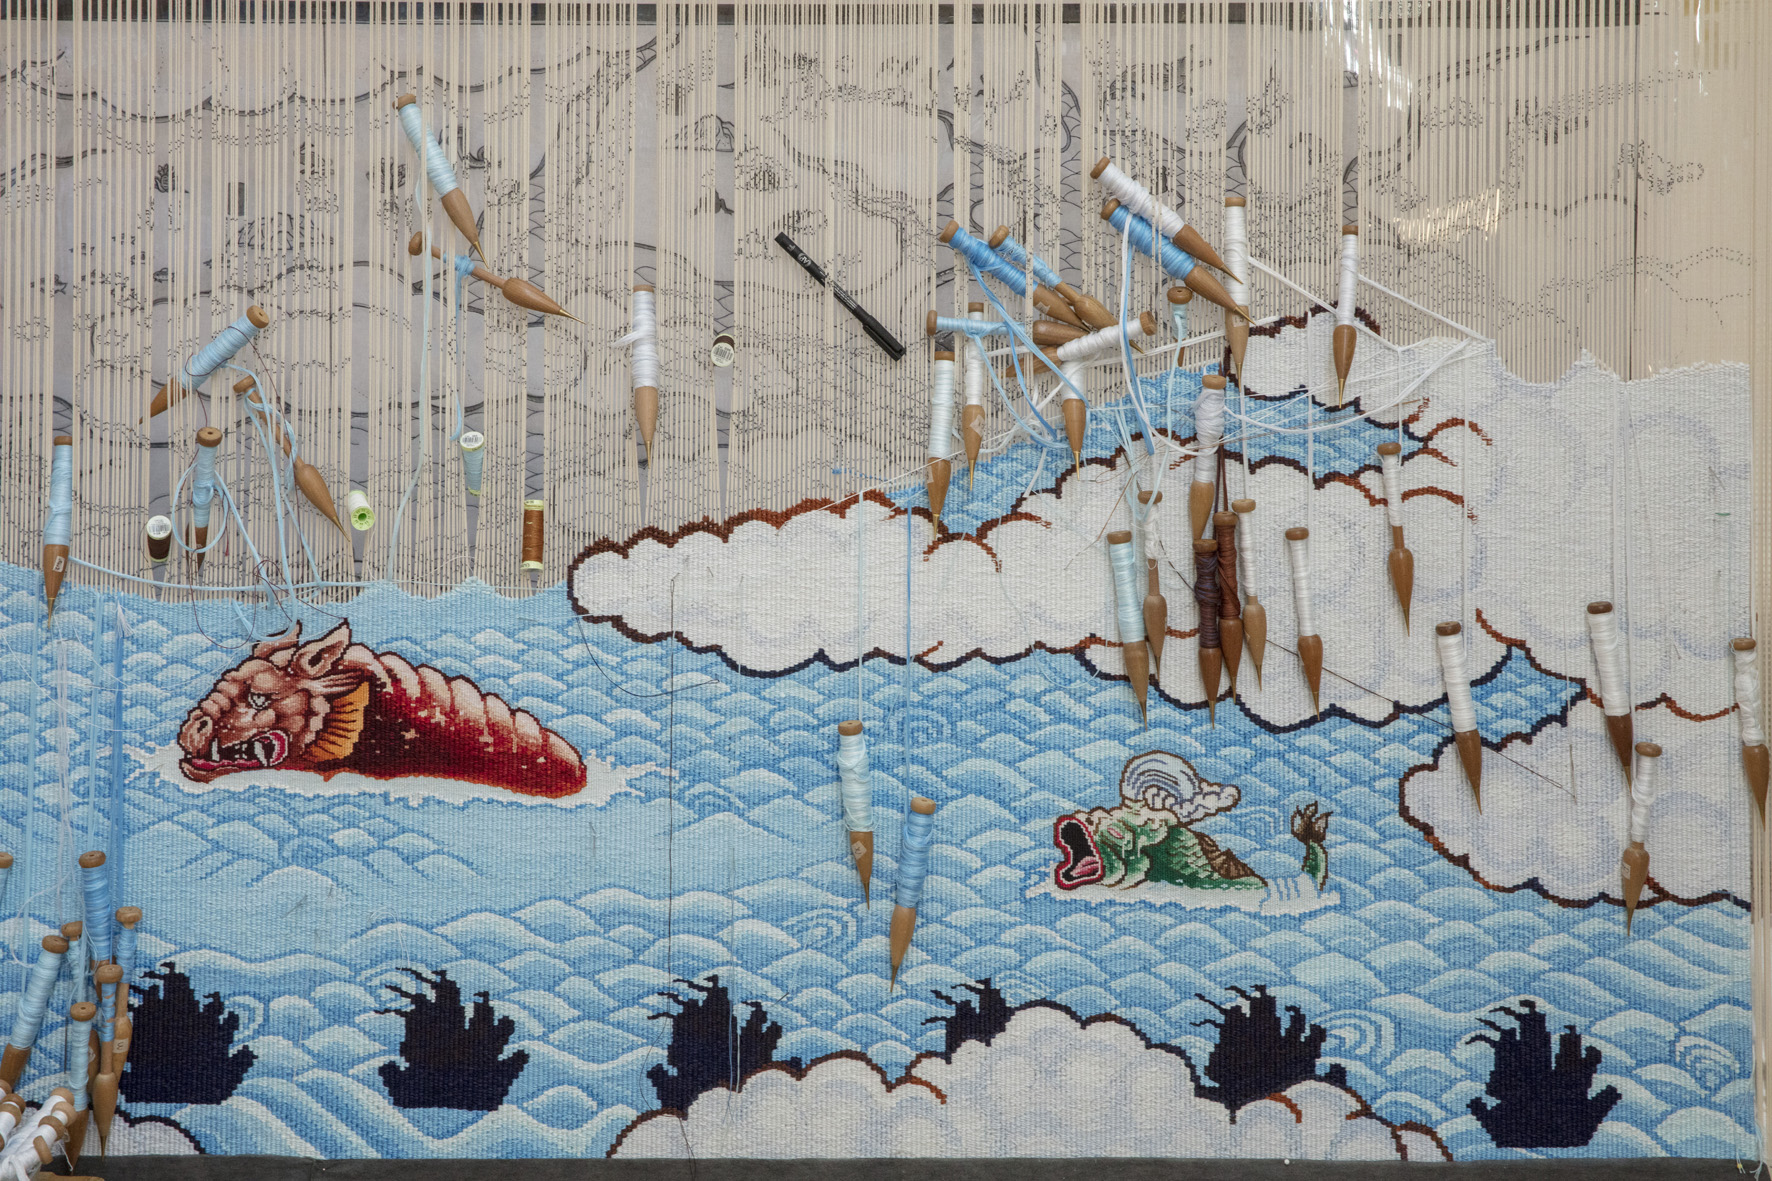 Guan Wei,  Treasure Hunt,  2017, woven by Chris Cochius, Pamela Joyce, Jennifer Sharpe & Cheryl Thornton, wool and cotton, 86.4 x 360cm, commissioned by the Australian Tapestry Workshop.